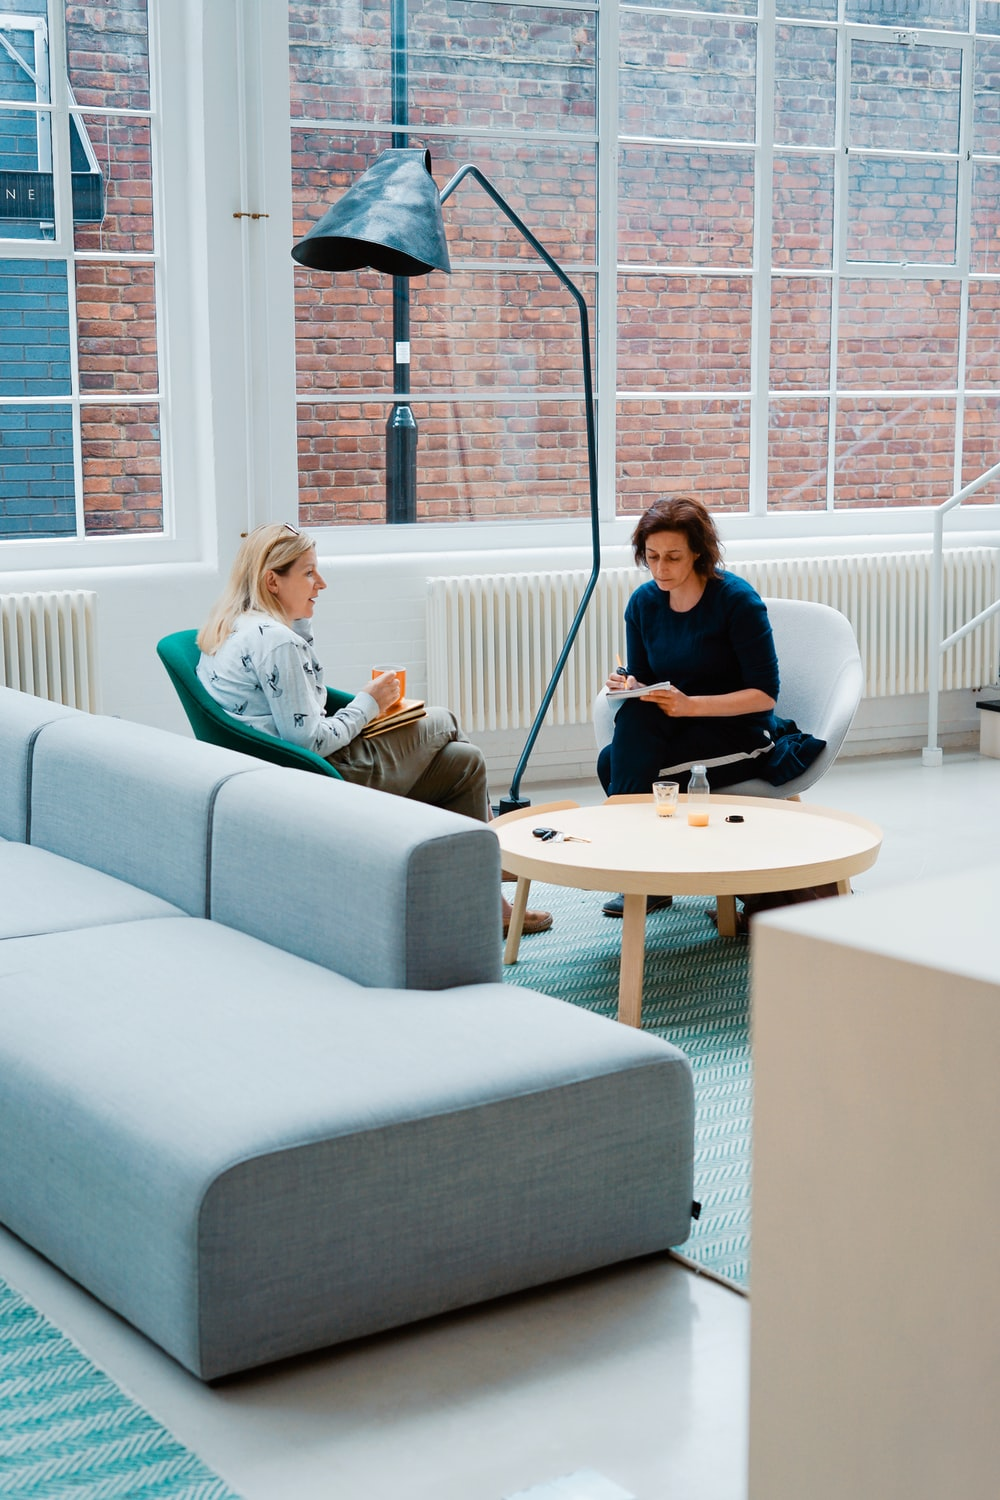 two woman sits on sofa chairs inside house